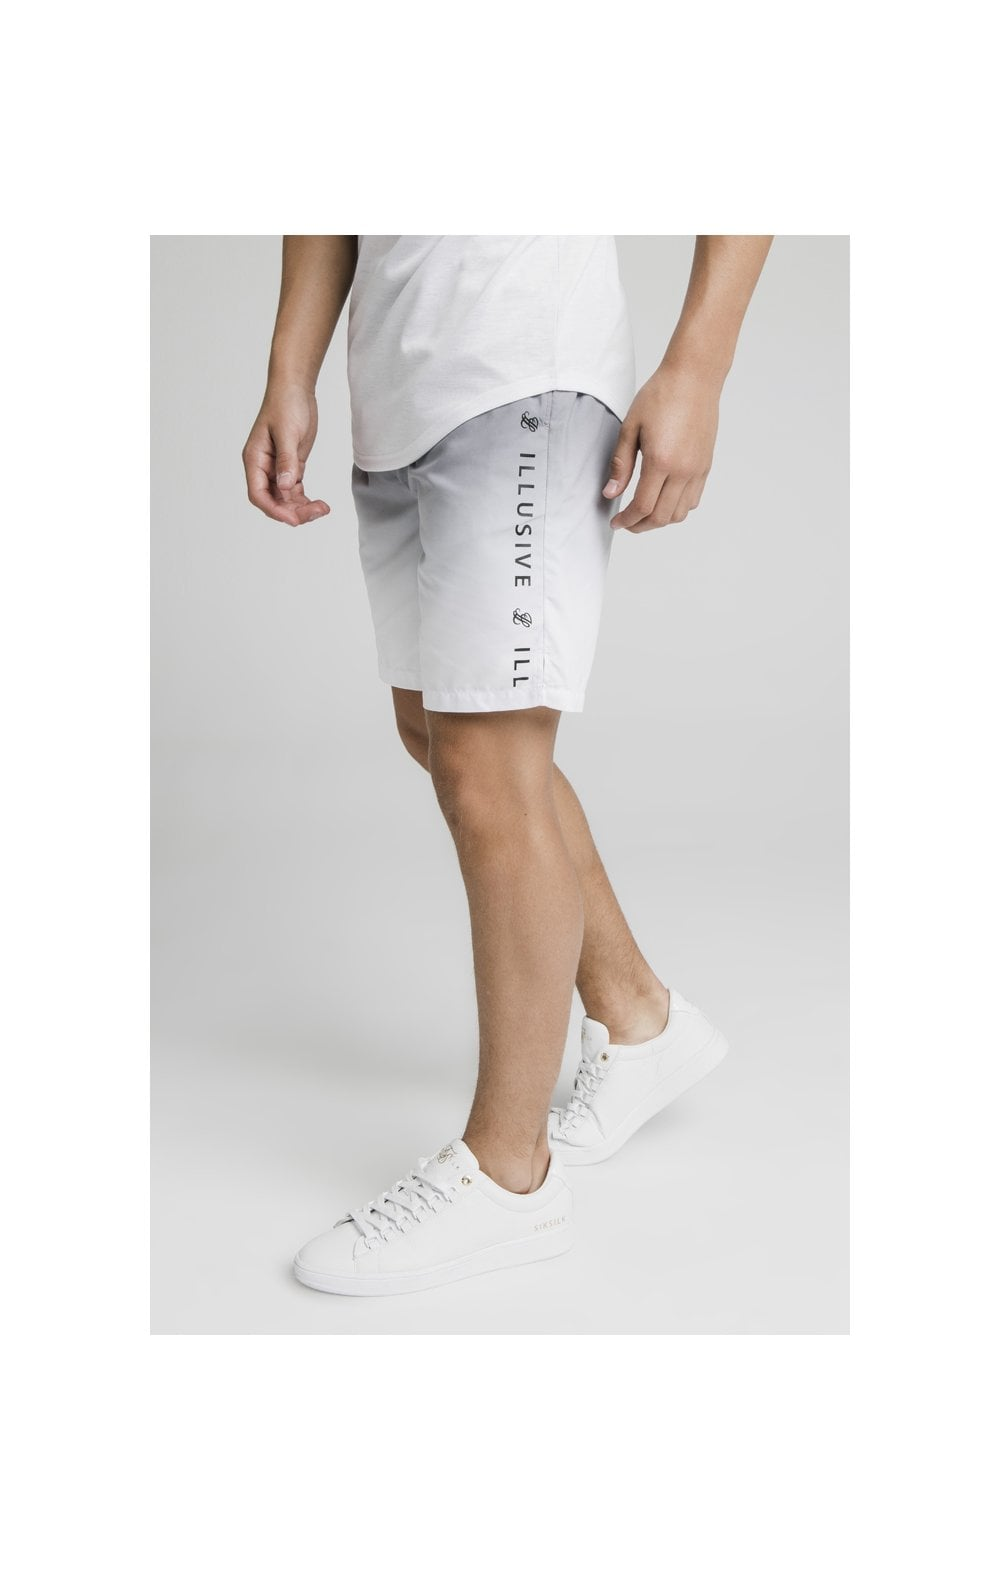 Illusive London Fade Swim Shorts - Grey & White (2)